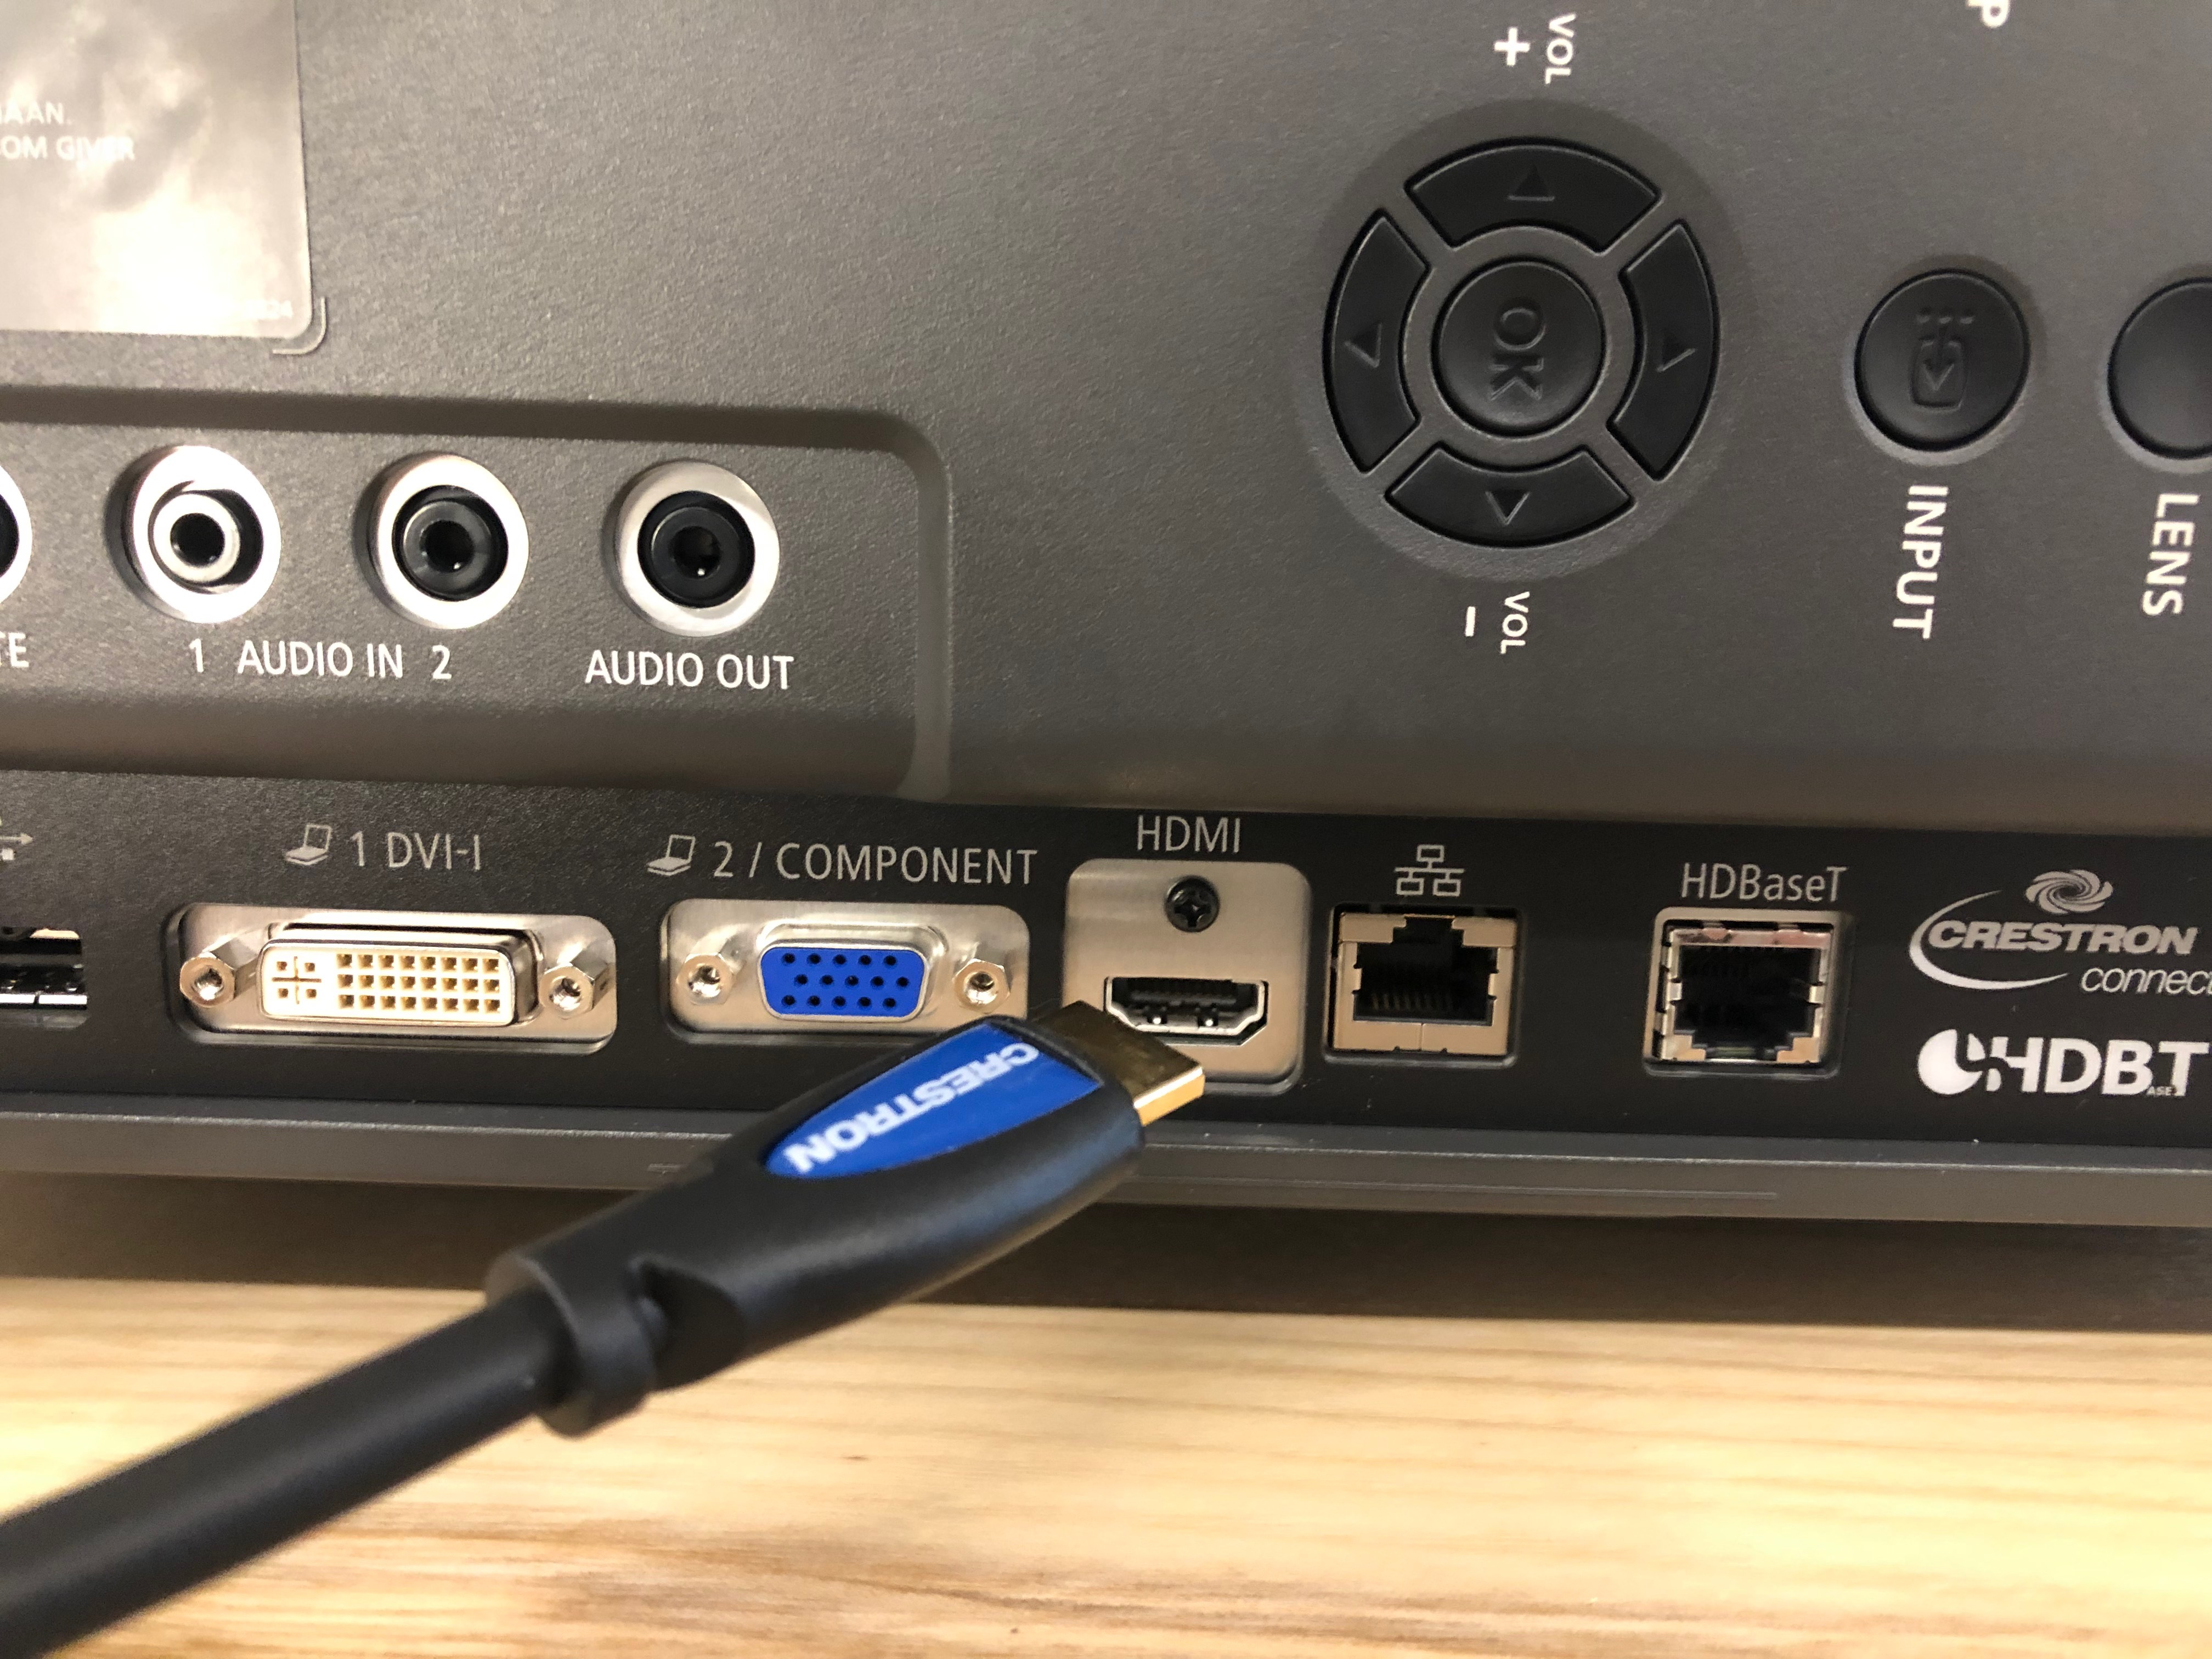 A photo of the HDMI cable near the projector.